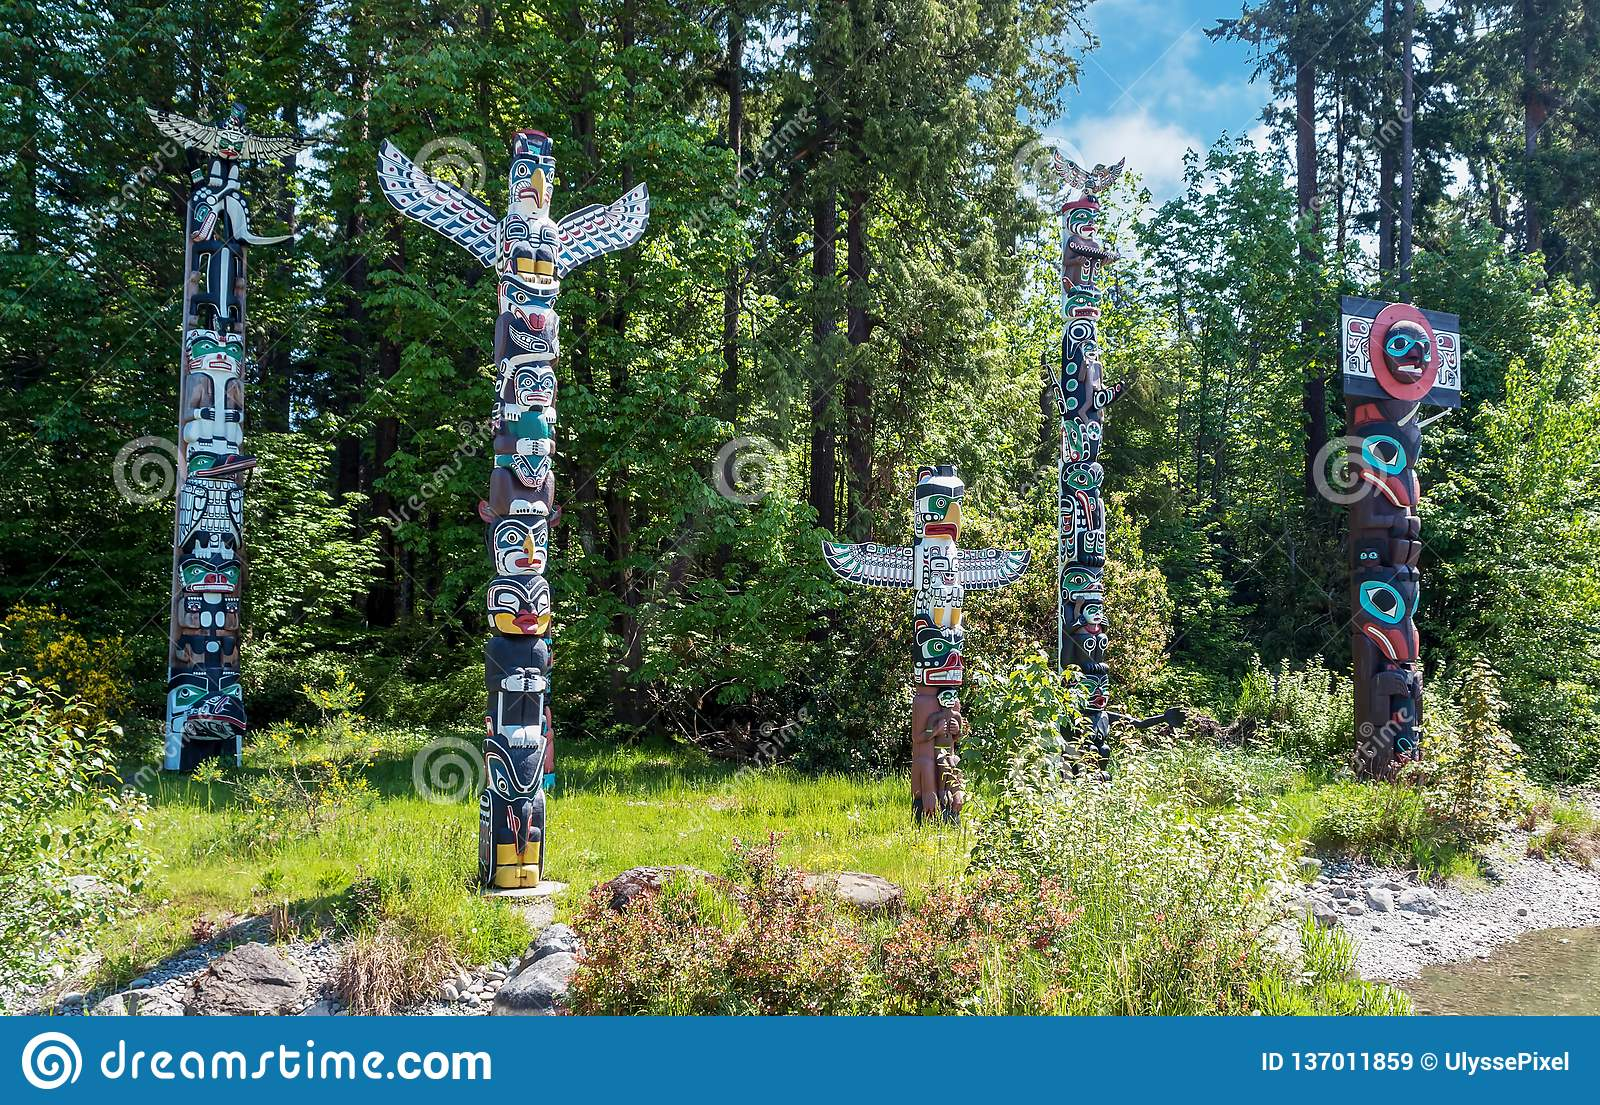 Totems in Stanley Park, Vancouver Canada